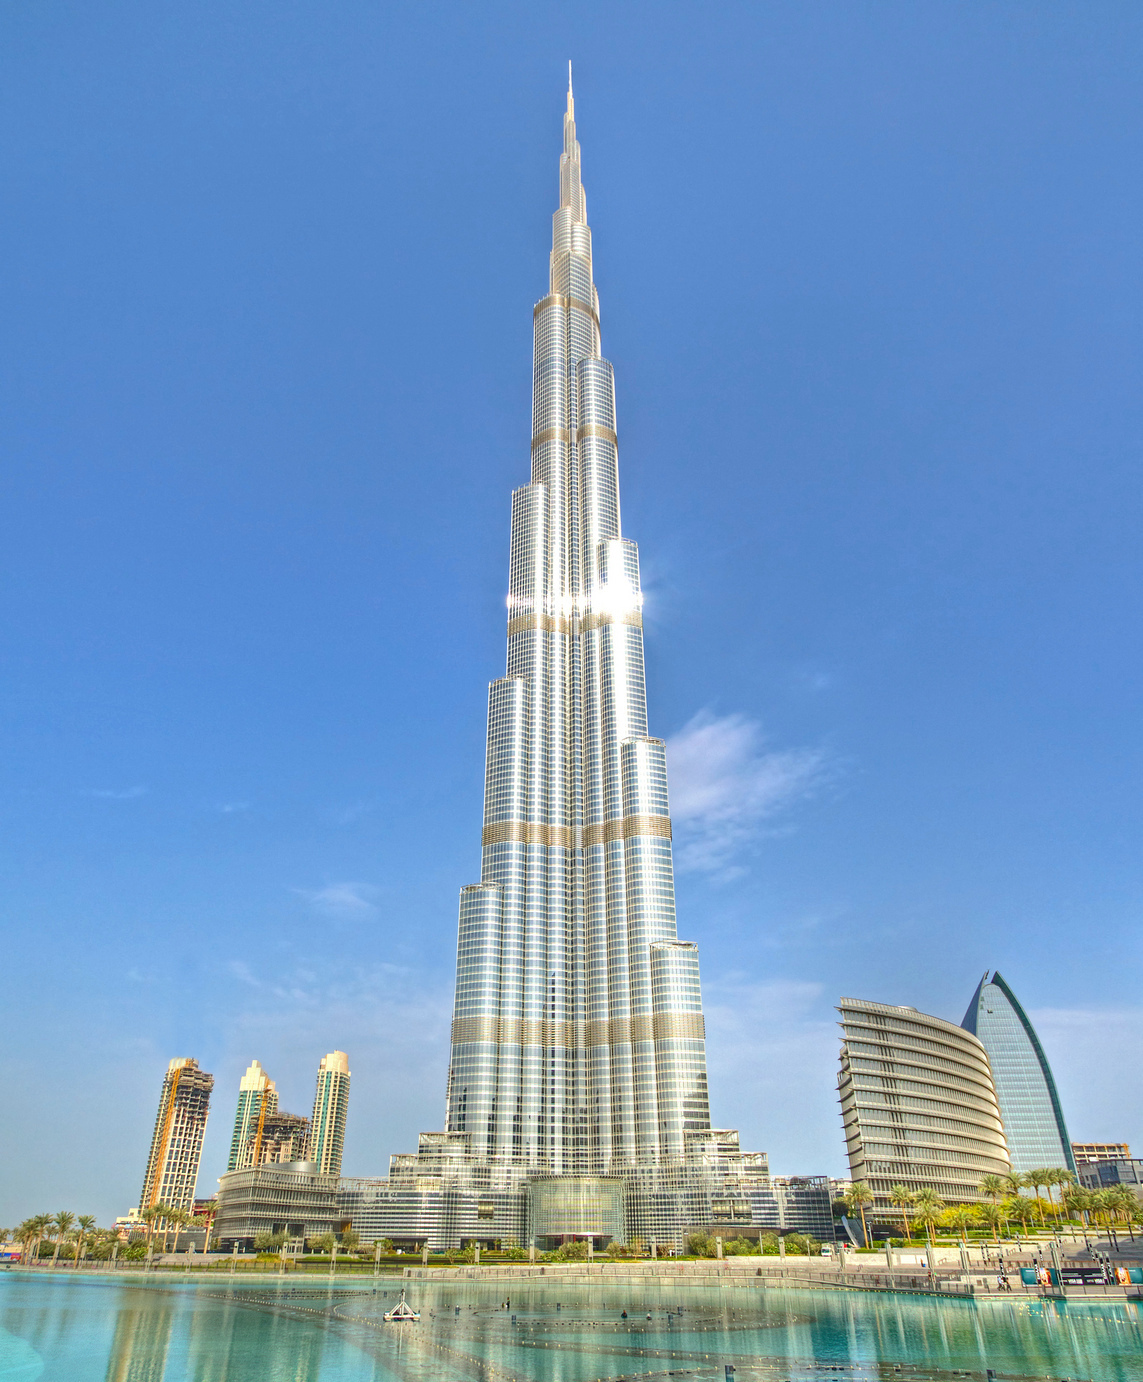 The Burj Khalifa skyscraper, Dubai